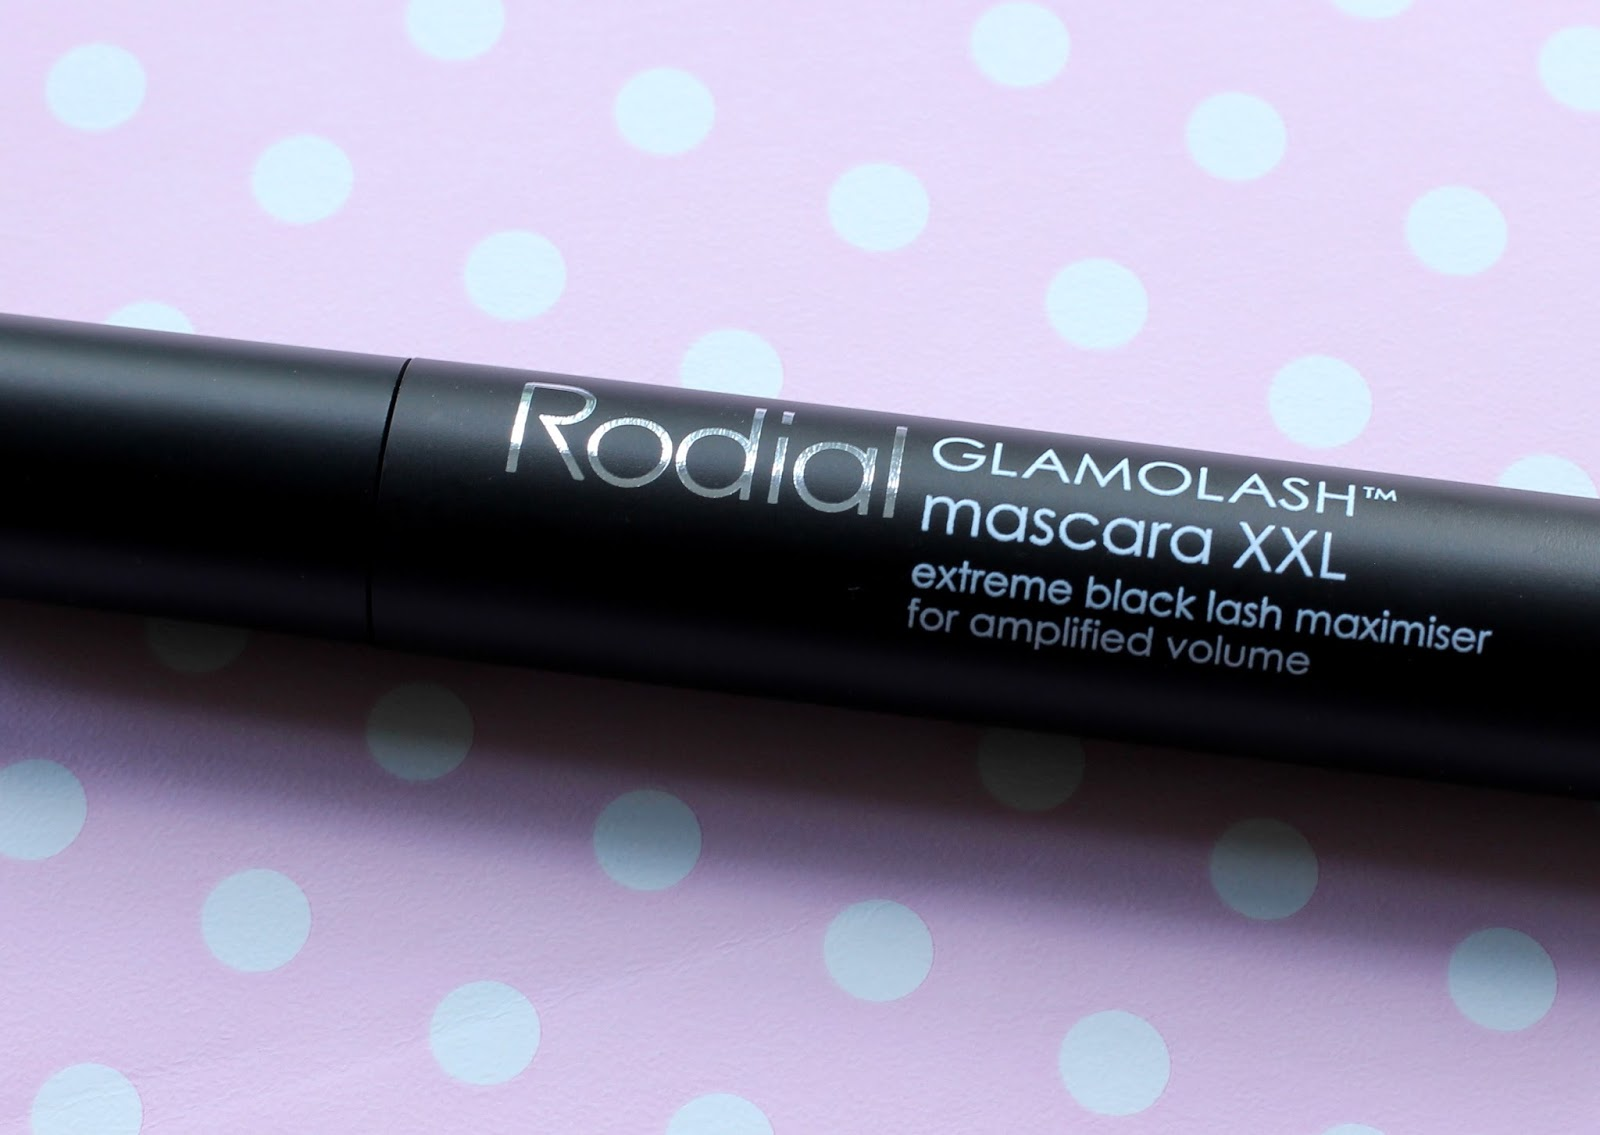 Rodial Glamolash Mascara XXL review